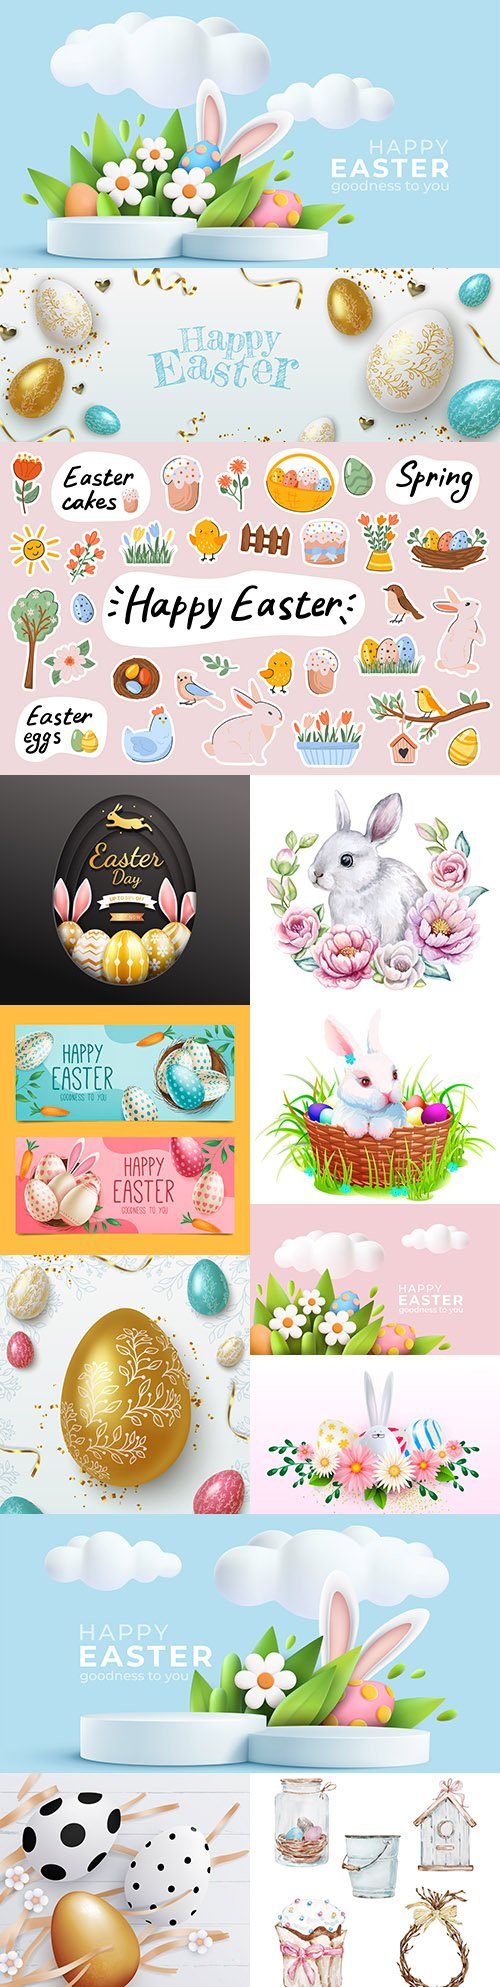 Happy Easter background and design banner with colorful eggs 6